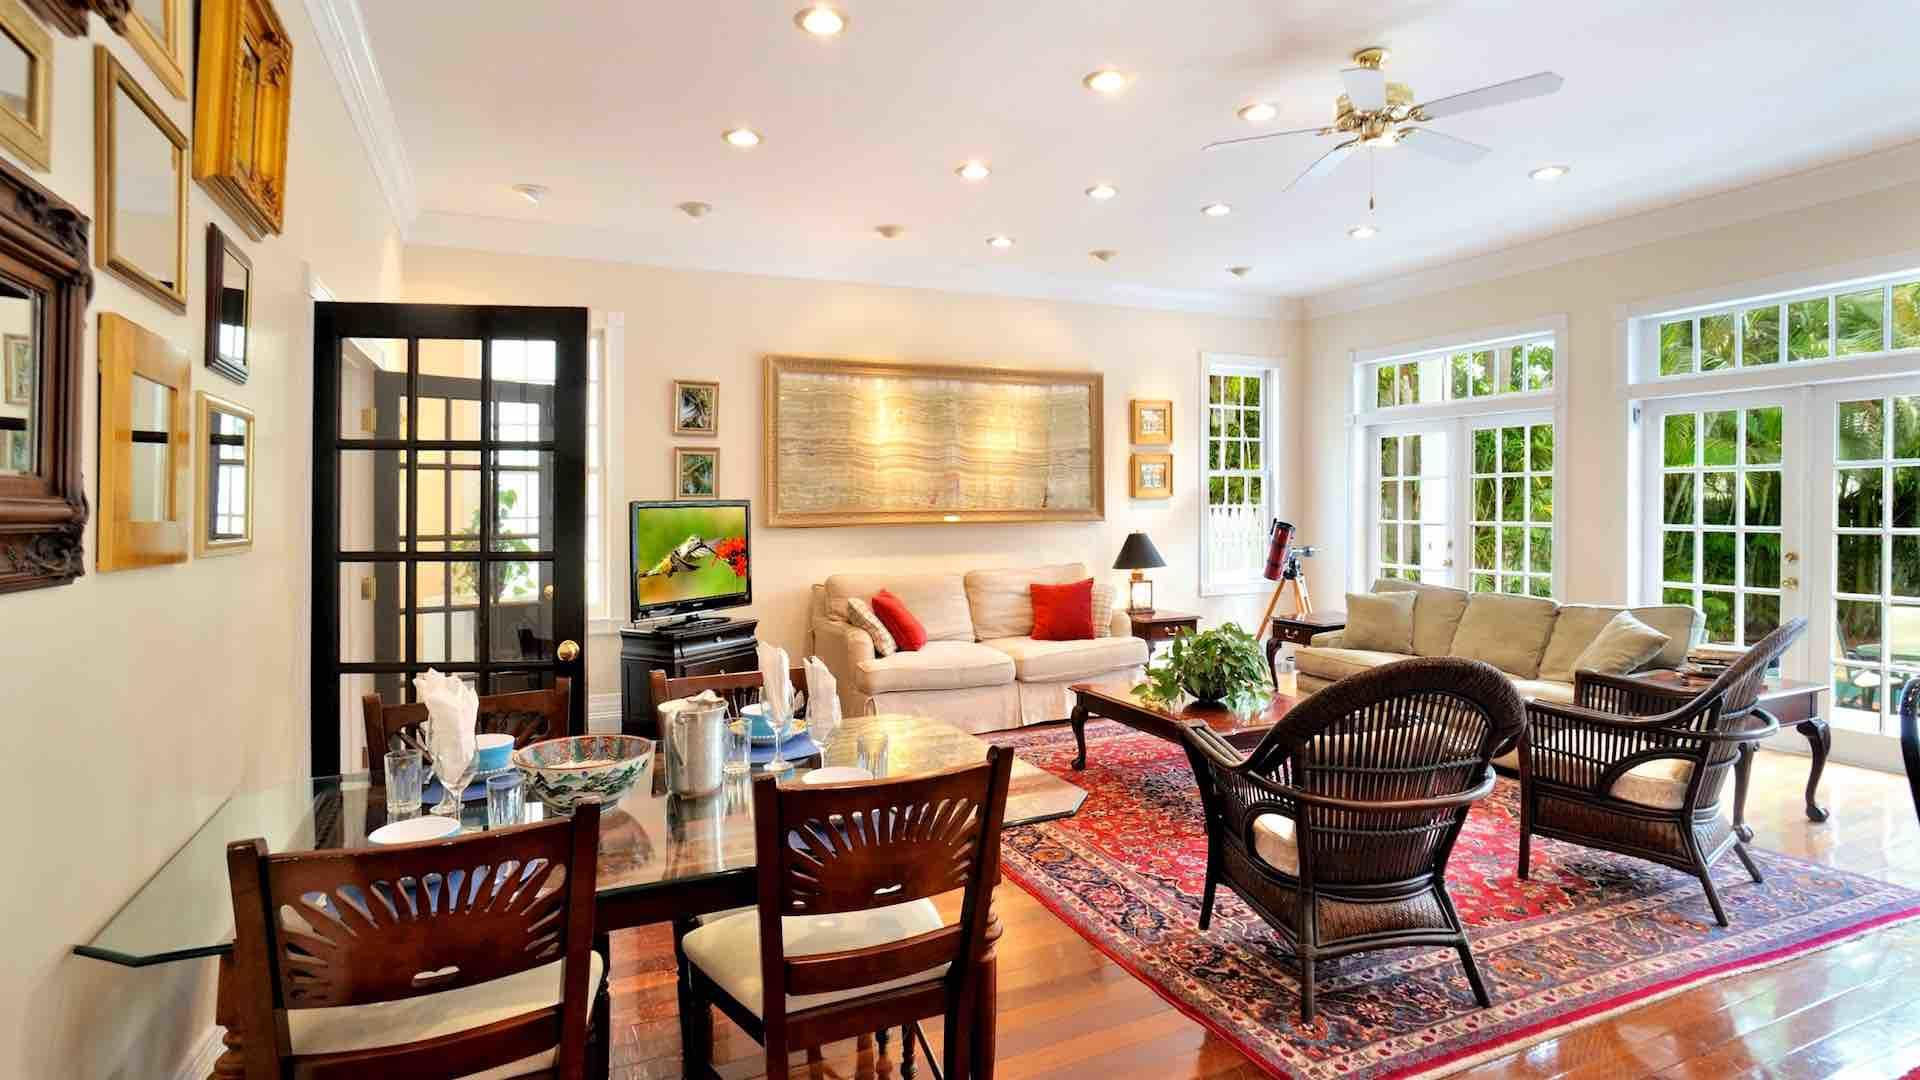 The spacious living area features two oversized couches...